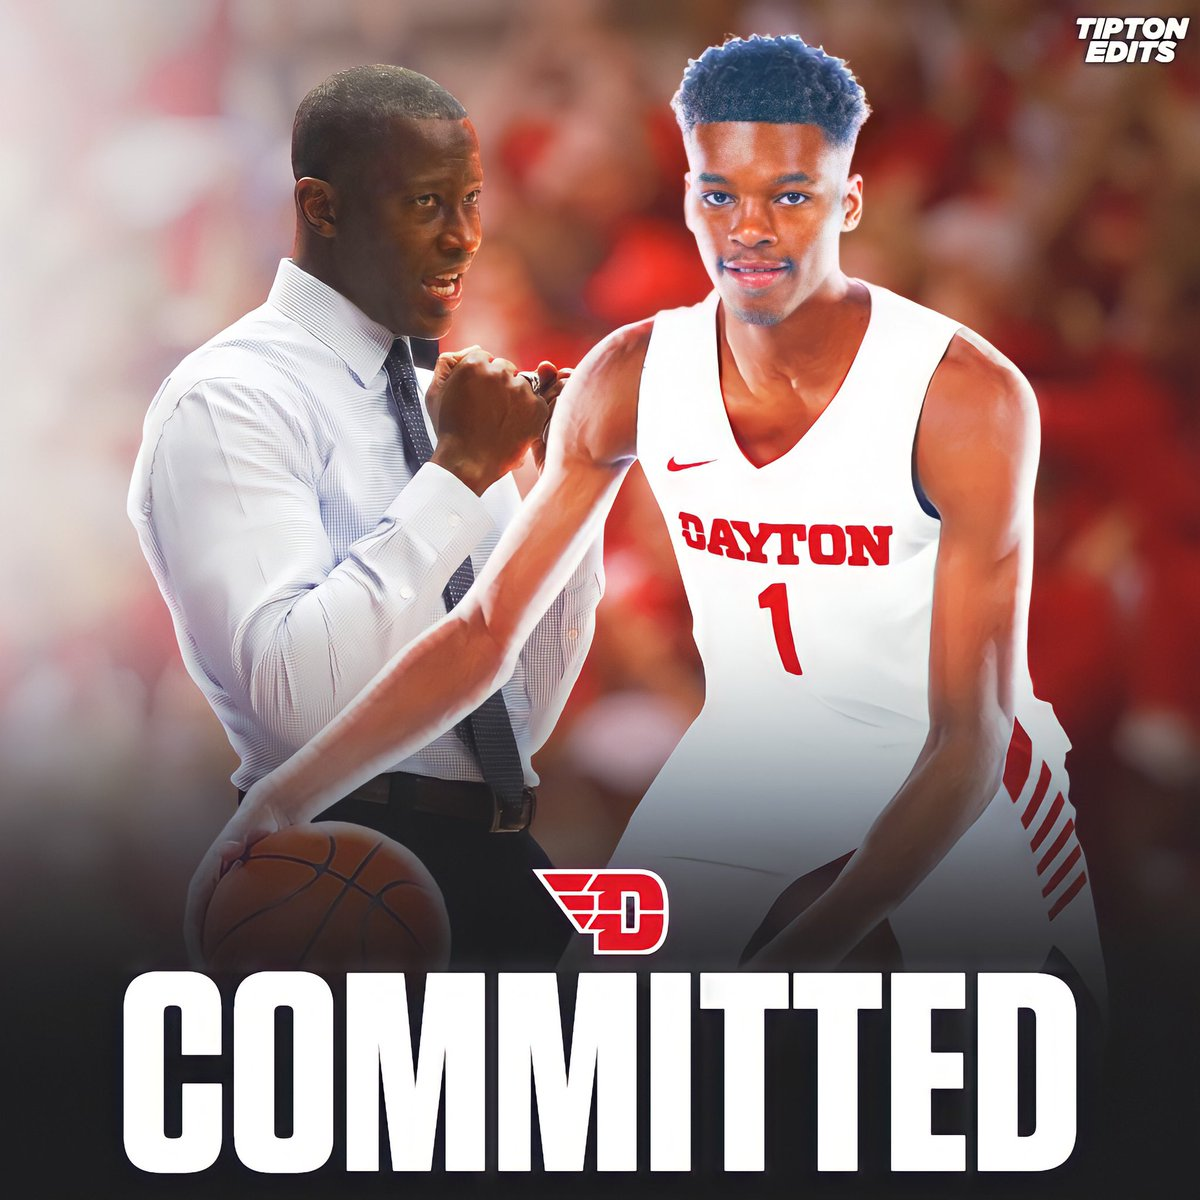 Replying to @DaRonagon: 110% committed... truly blessed 🤞🏾✈️✈️✈️✈️✈️✈️✈️✈️✈️ #GOFLYERS @TiptonEdits